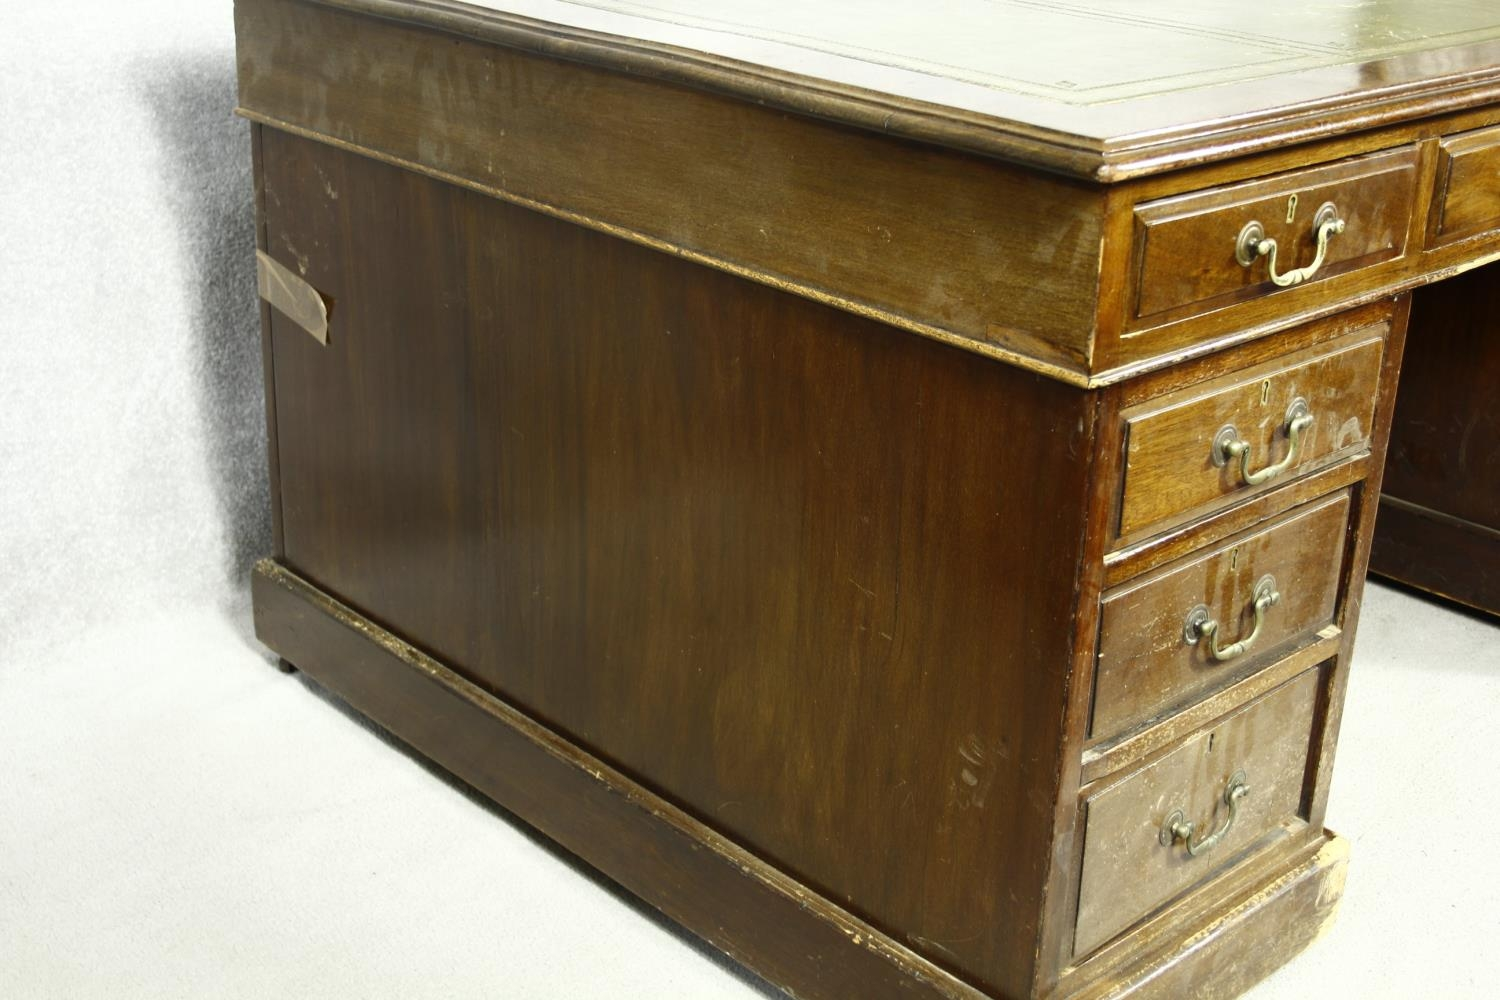 A C.1900 mahogany three section partner's pedestal desk with inset tooled leather top above an - Image 16 of 20